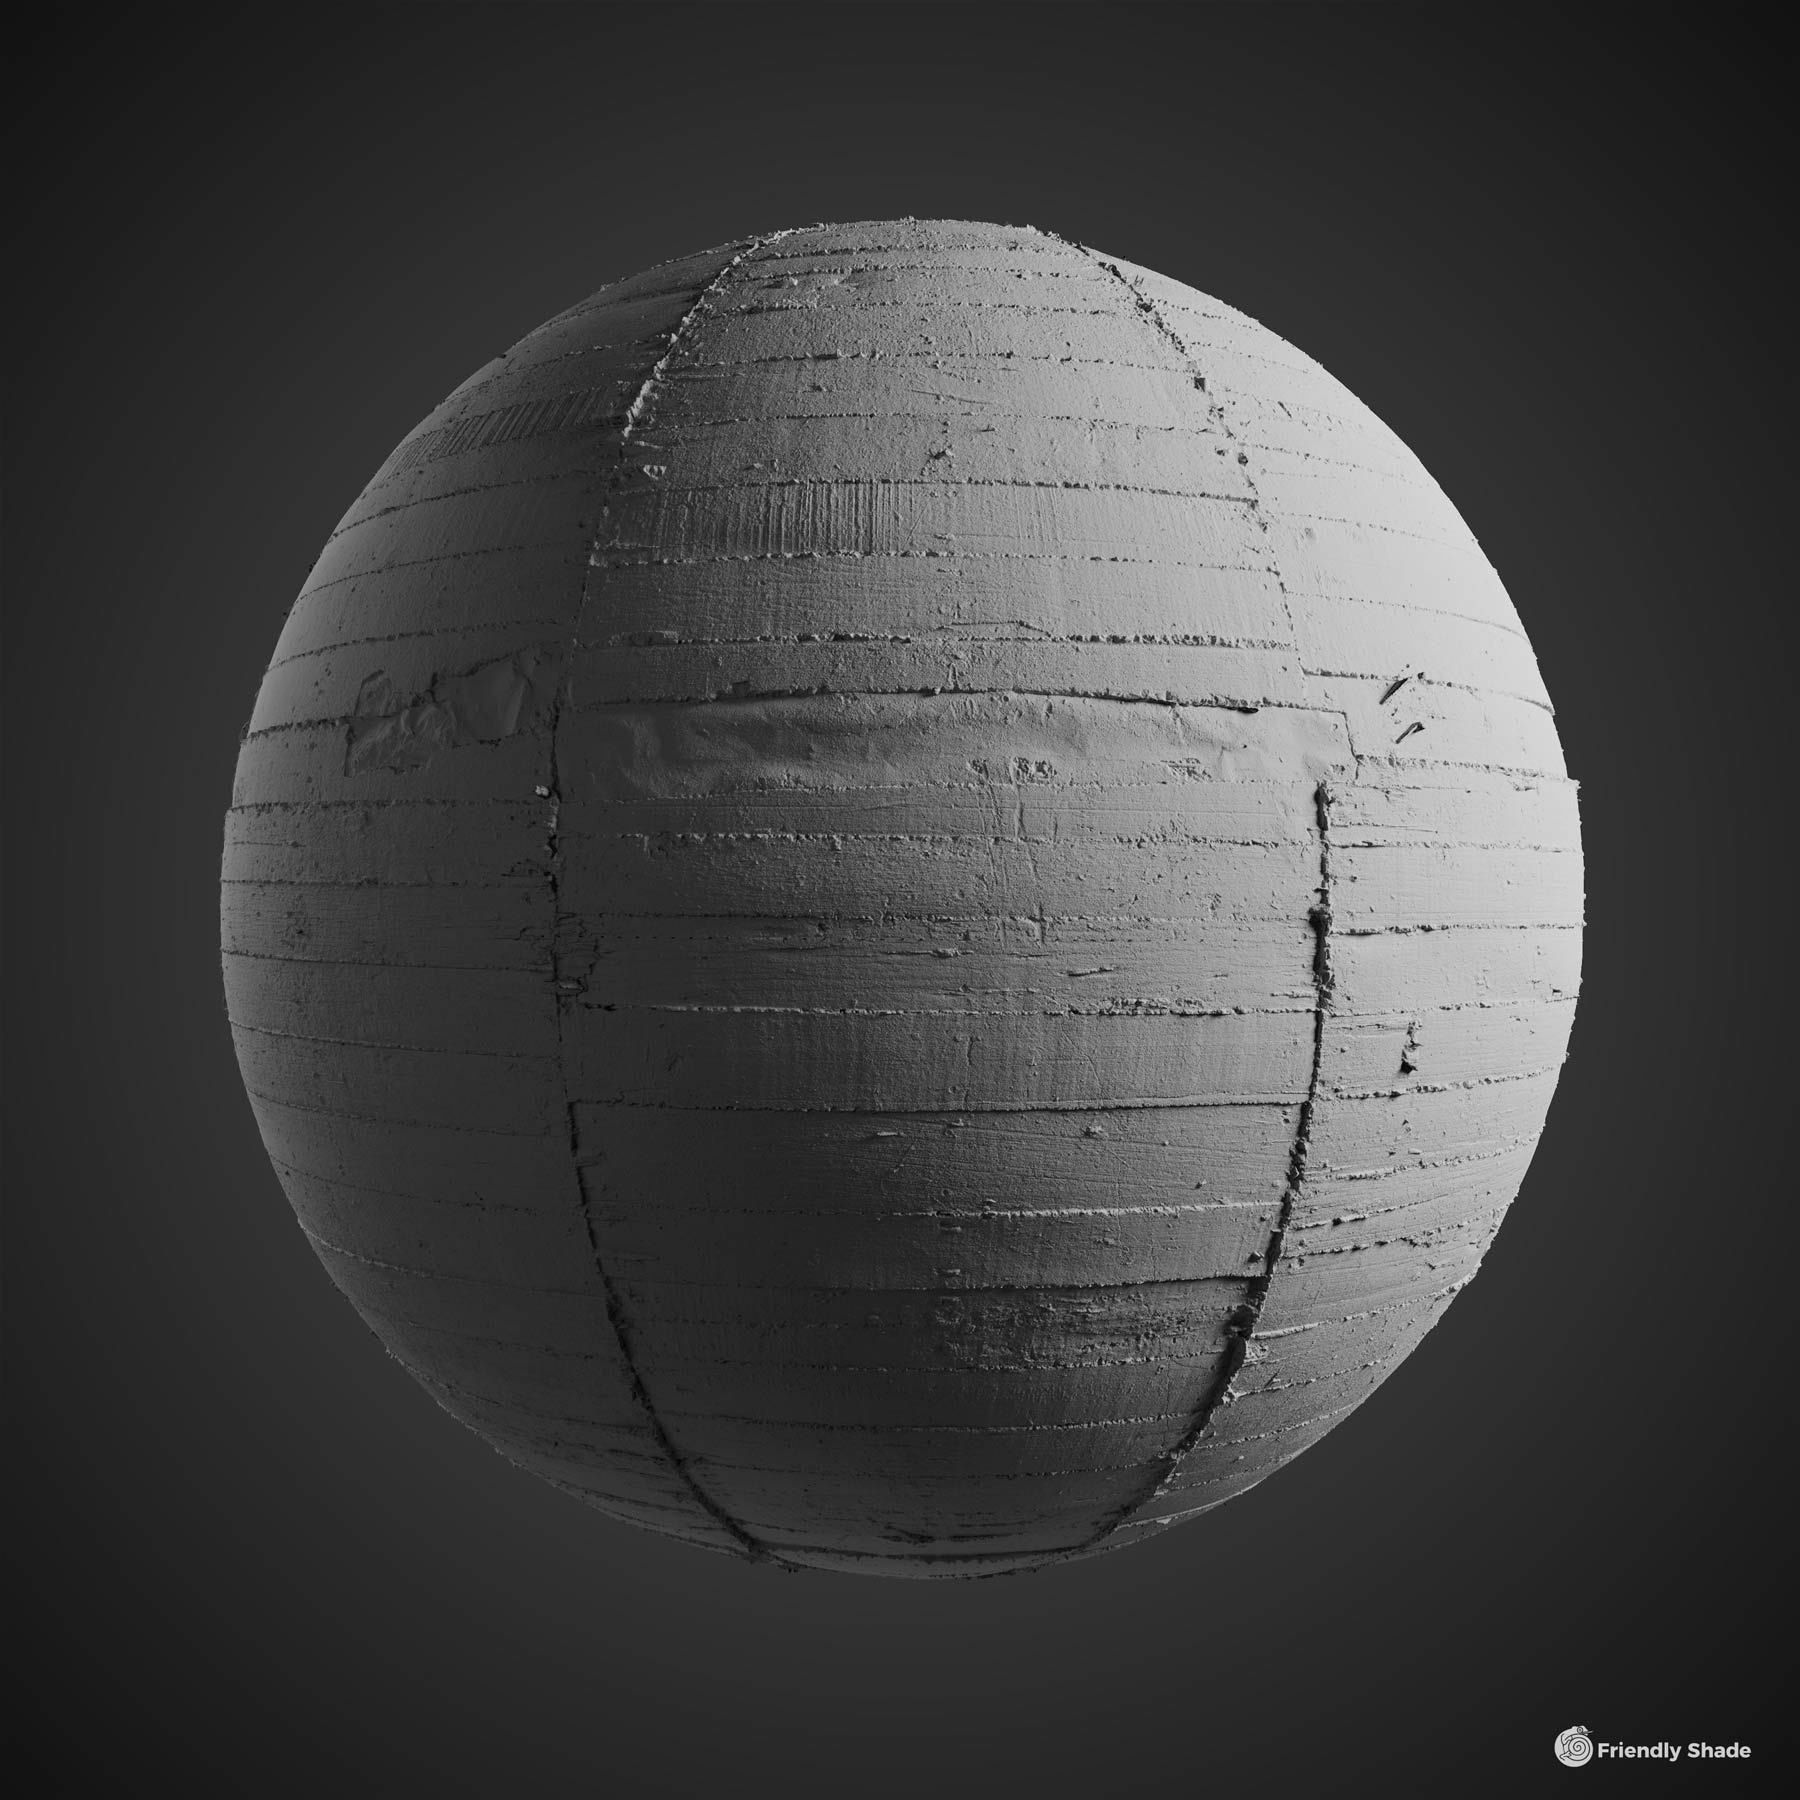 The image shows a clay sphere of the board formed bare concrete texture